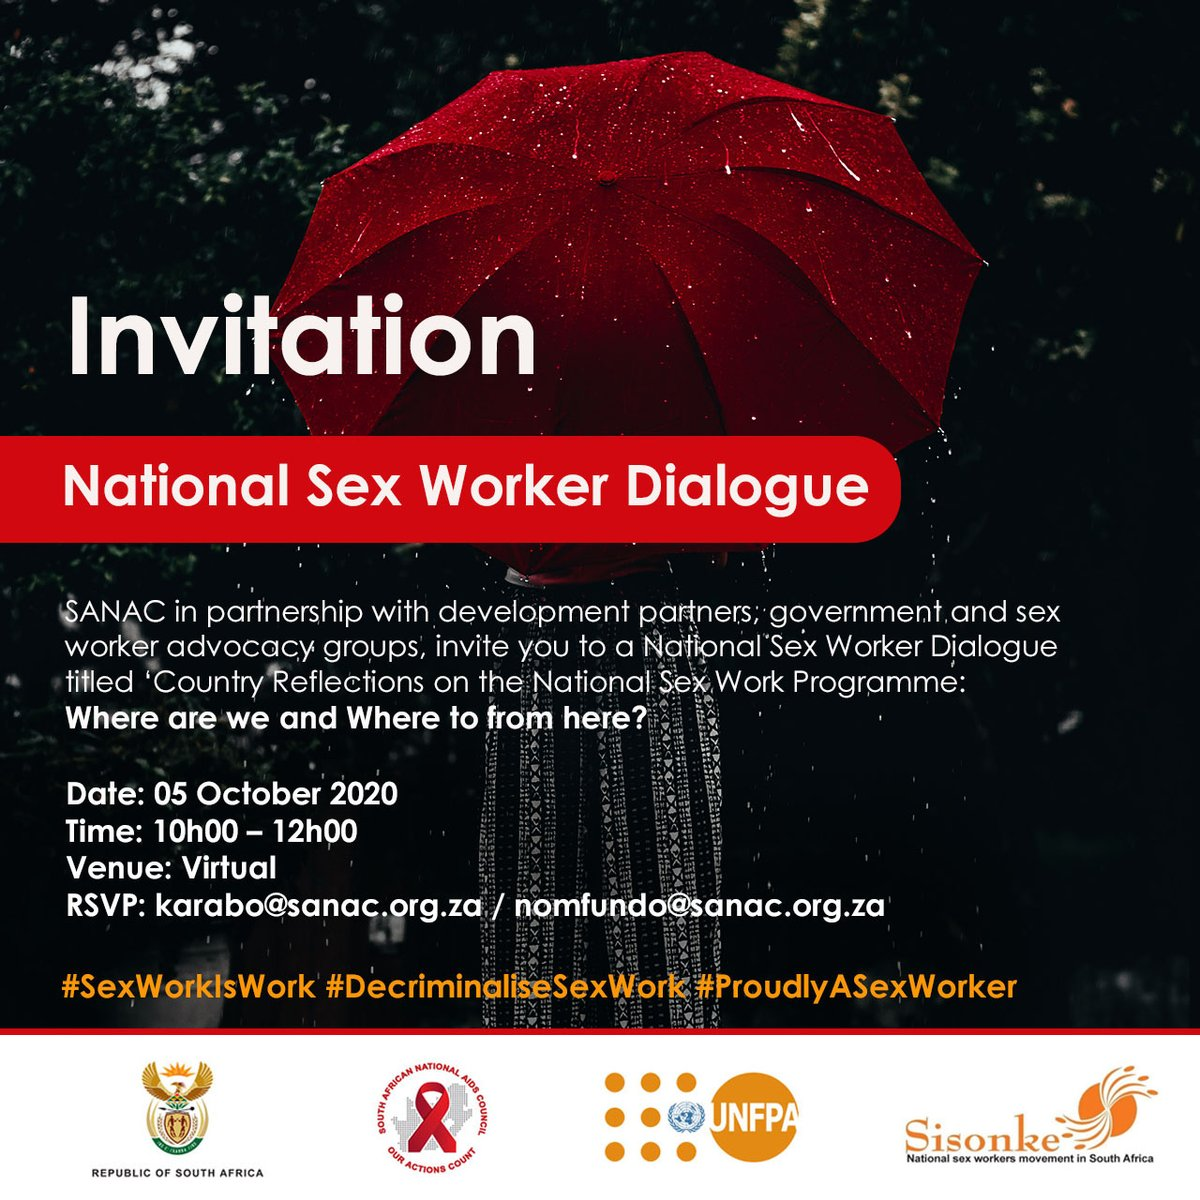 #WebinarAlert #SexWorkIsWork REGISTER on this link: https://t.co/8ZgGYqXkud  @The_DSD @HealthZA @UNFPASA @Sisonke_ZA @SisonkeSA @UNAIDS_ZAF